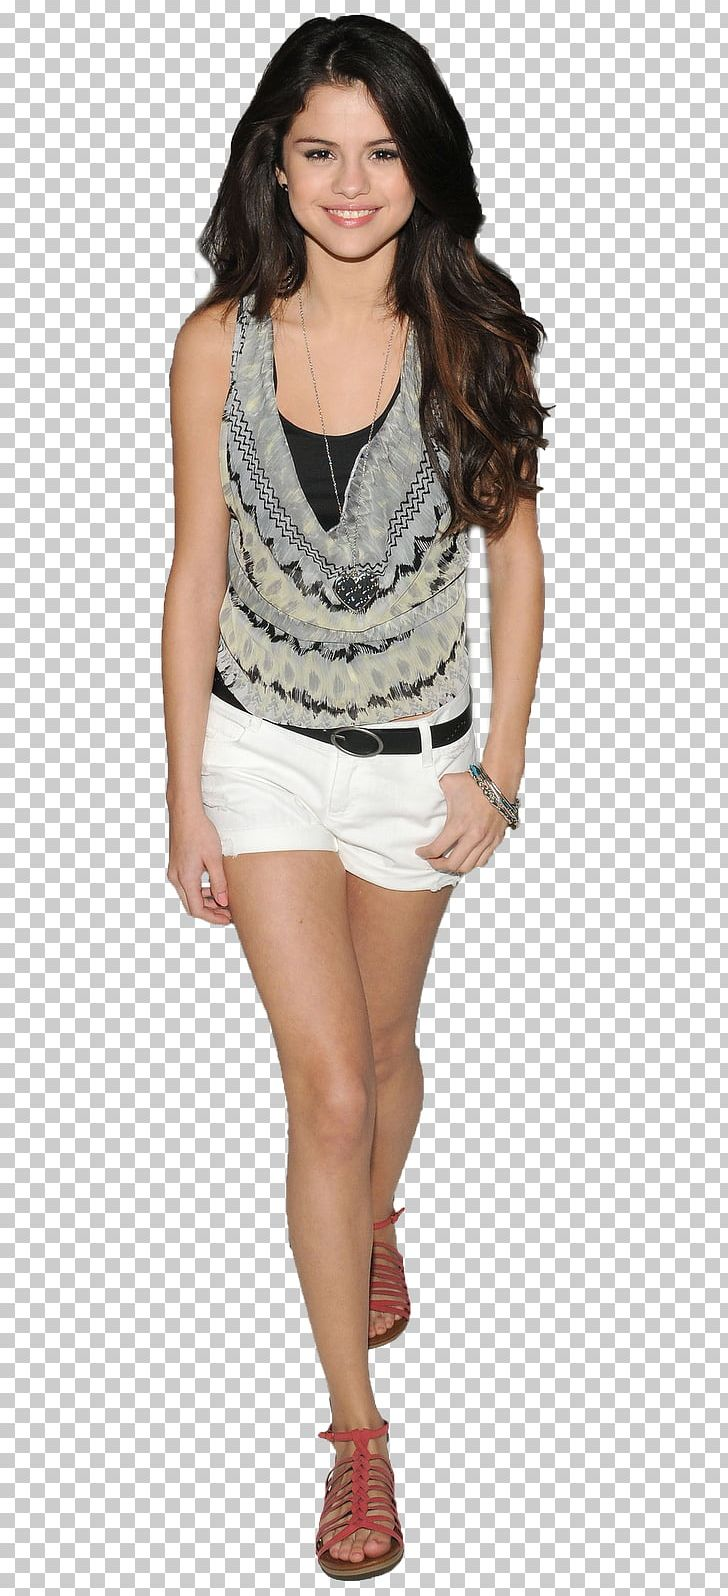 Dream Out Loud By Selena Gomez 2012 Teen Choice Awards Model Artist PNG, Clipart, 2012 Teen Choice Awards, Artist, Brown Hair, Clothing, Demi Lovato Free PNG Download